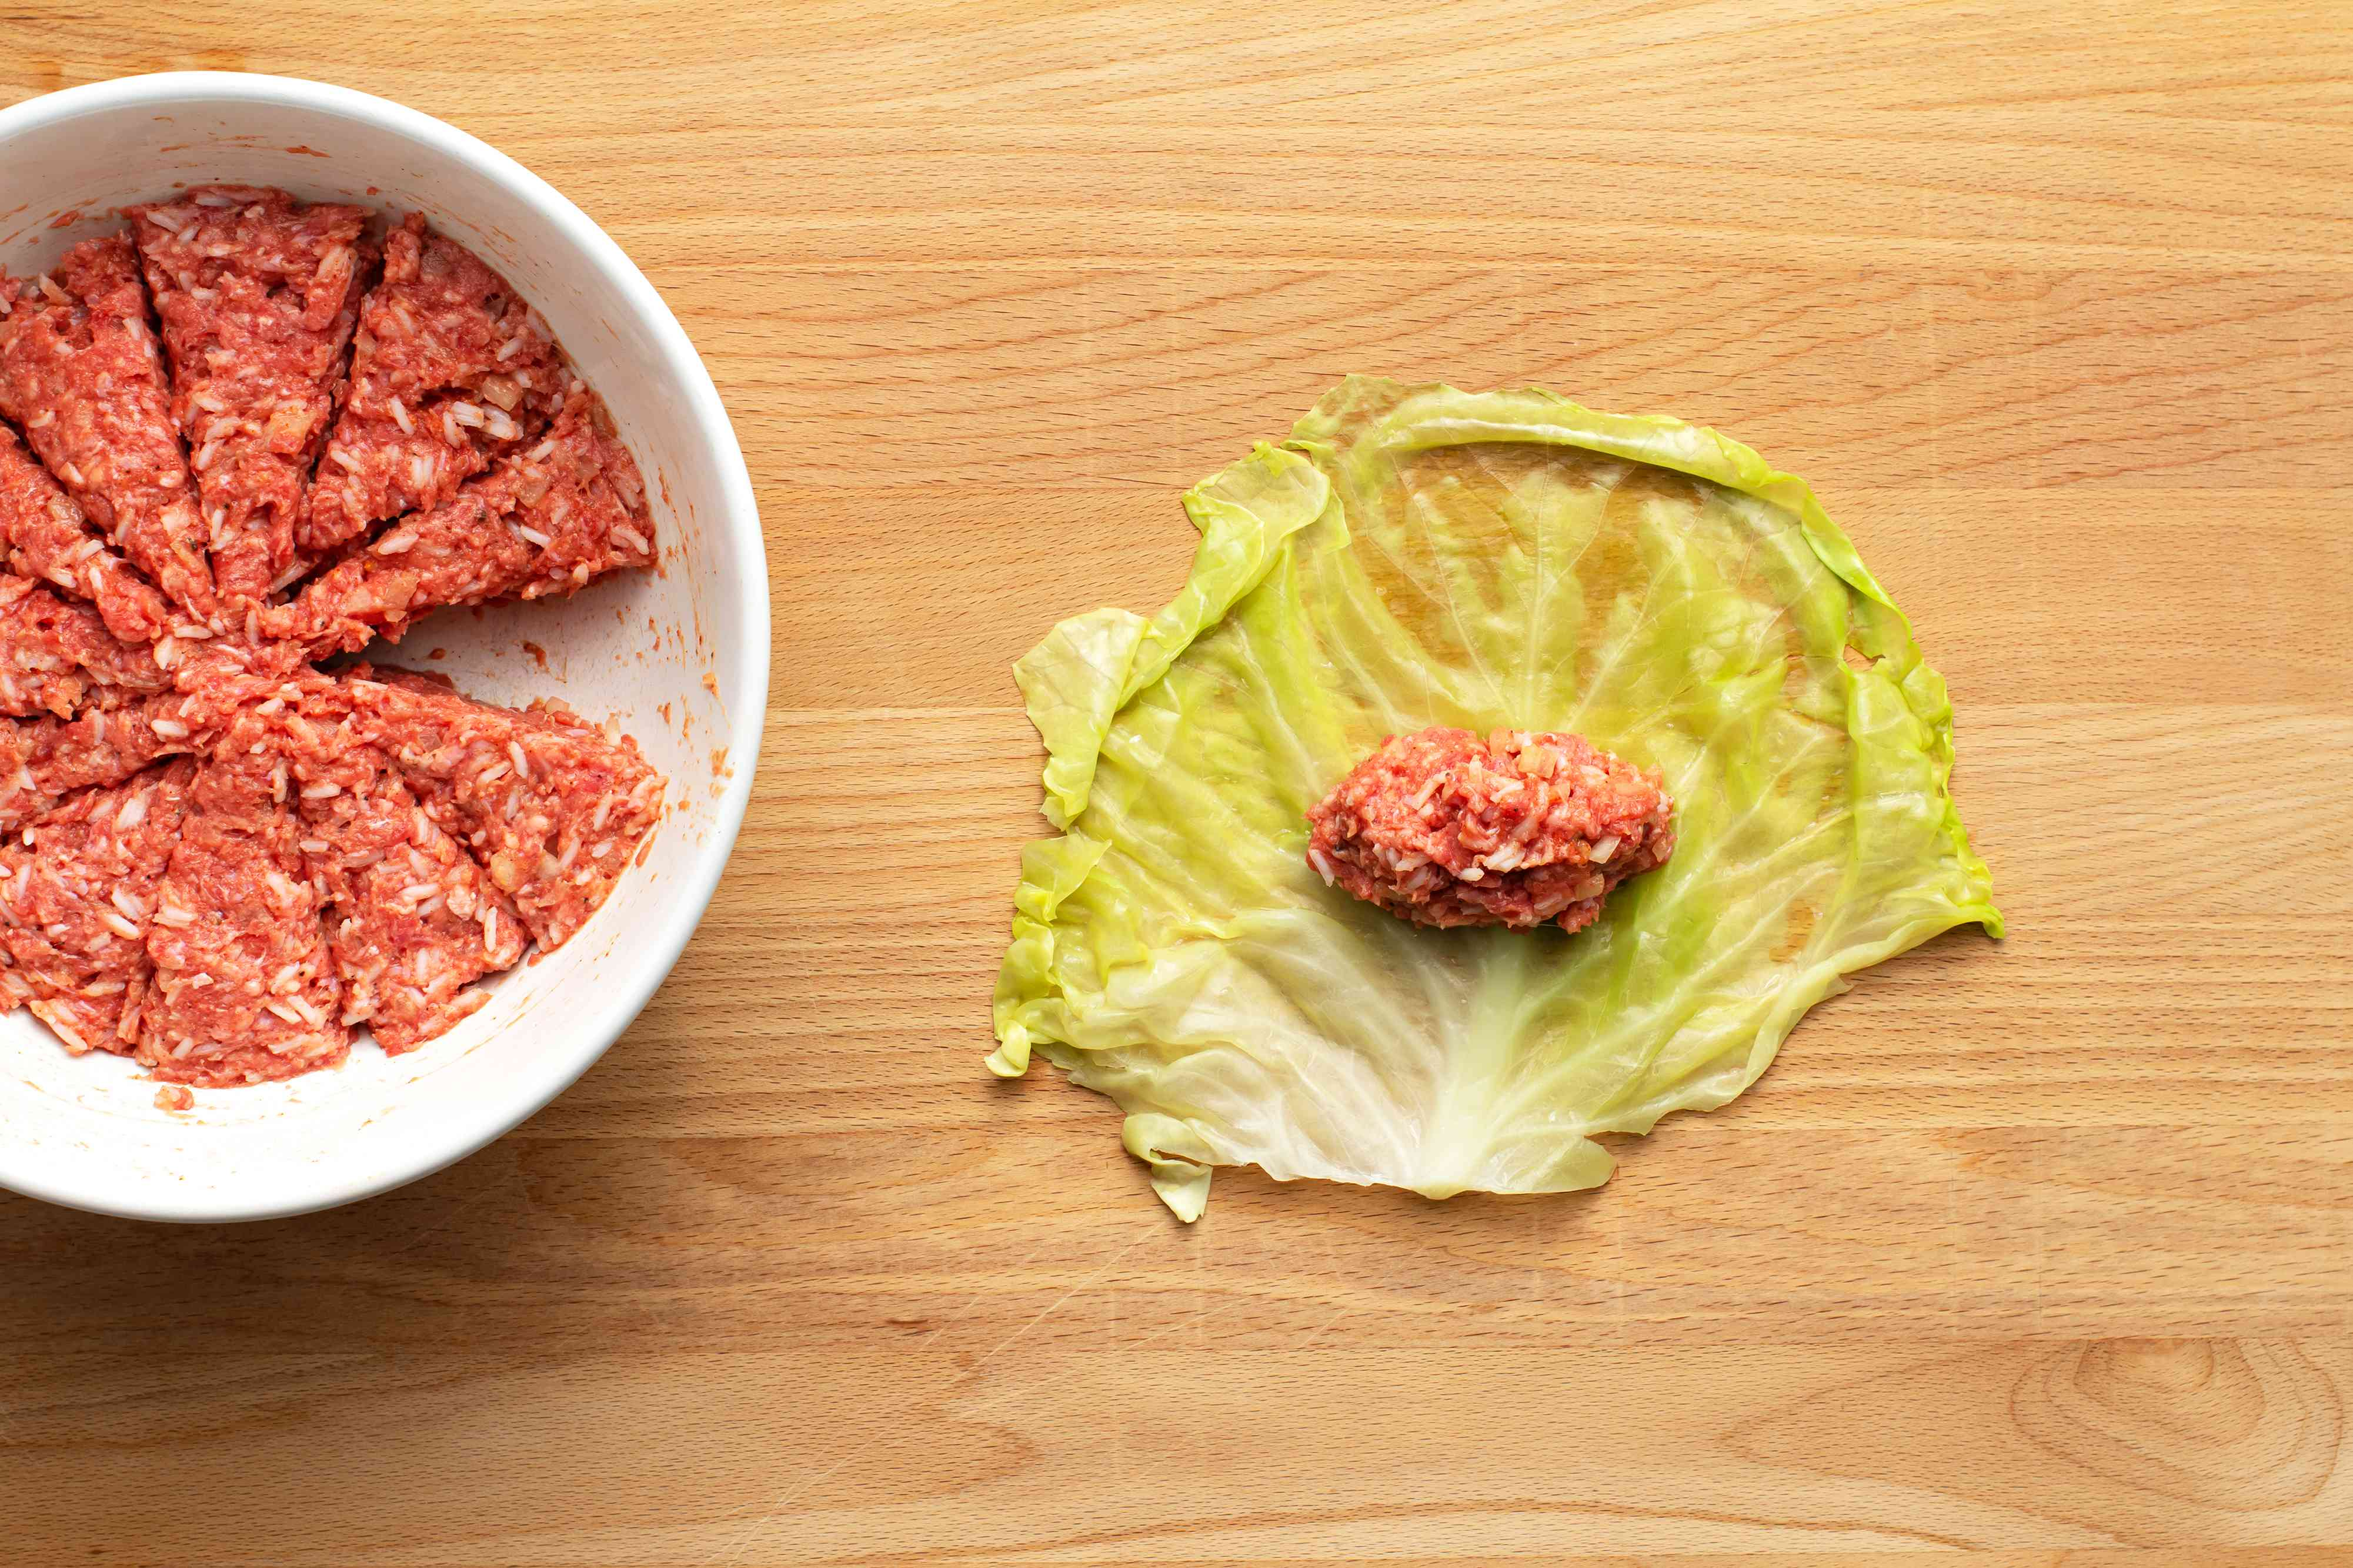 Place meat on the cabbage leaf